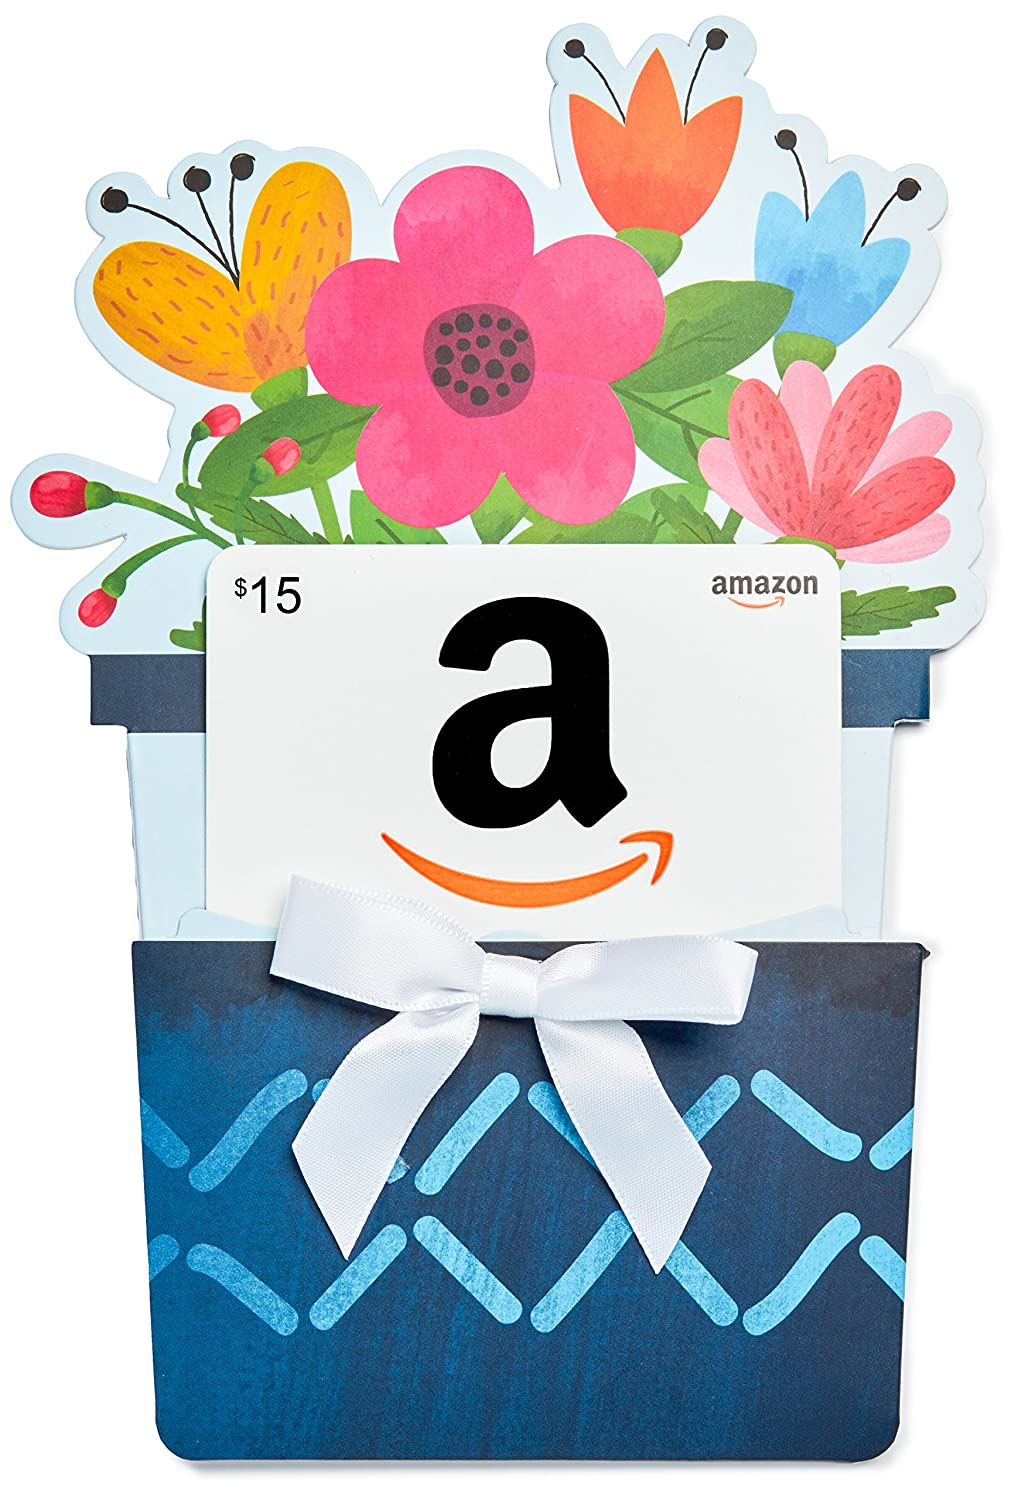 Amazon.ca Gift Card in a Flower Pot Reveal (Classic White Card Design) Amazon.com.ca Inc.